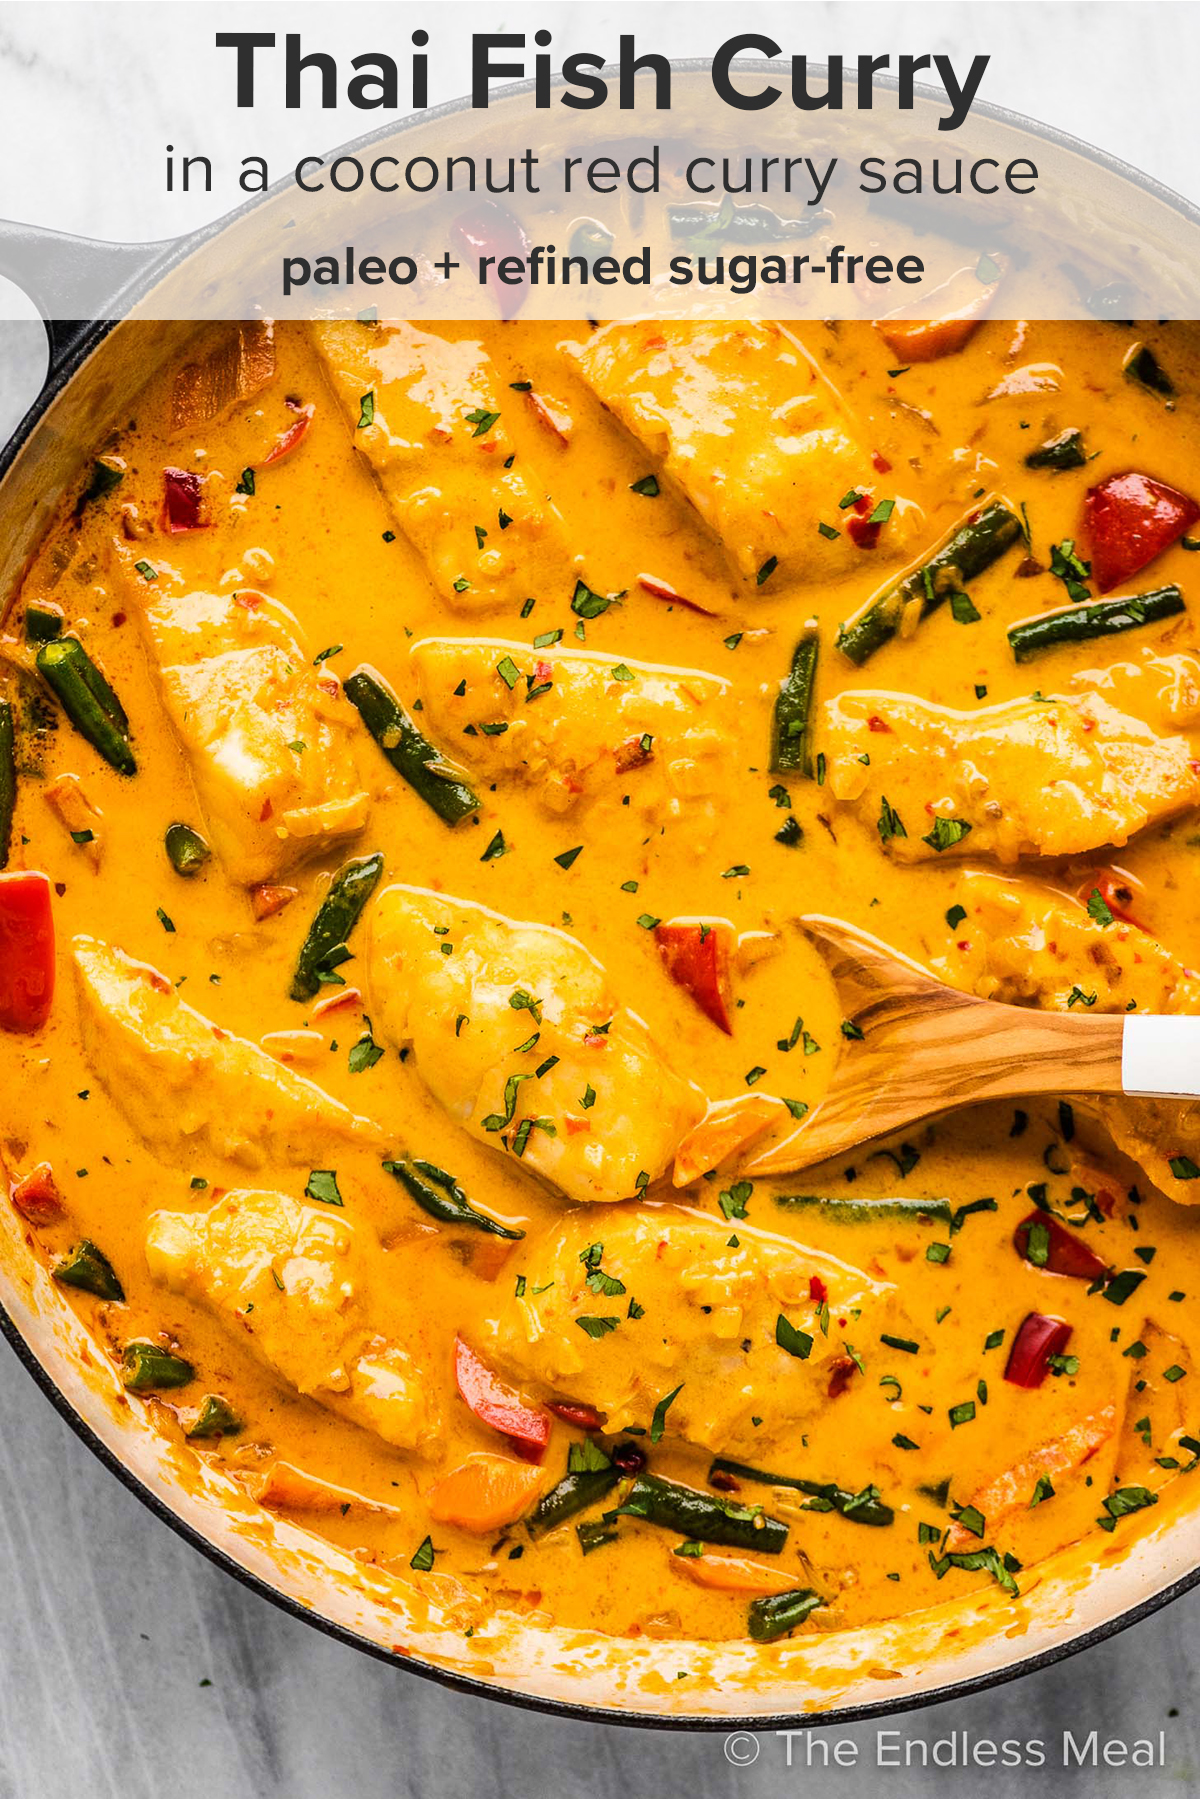 A pan of Thai fish curry with a wooden spoon inside and the recipe title on top of the picture.